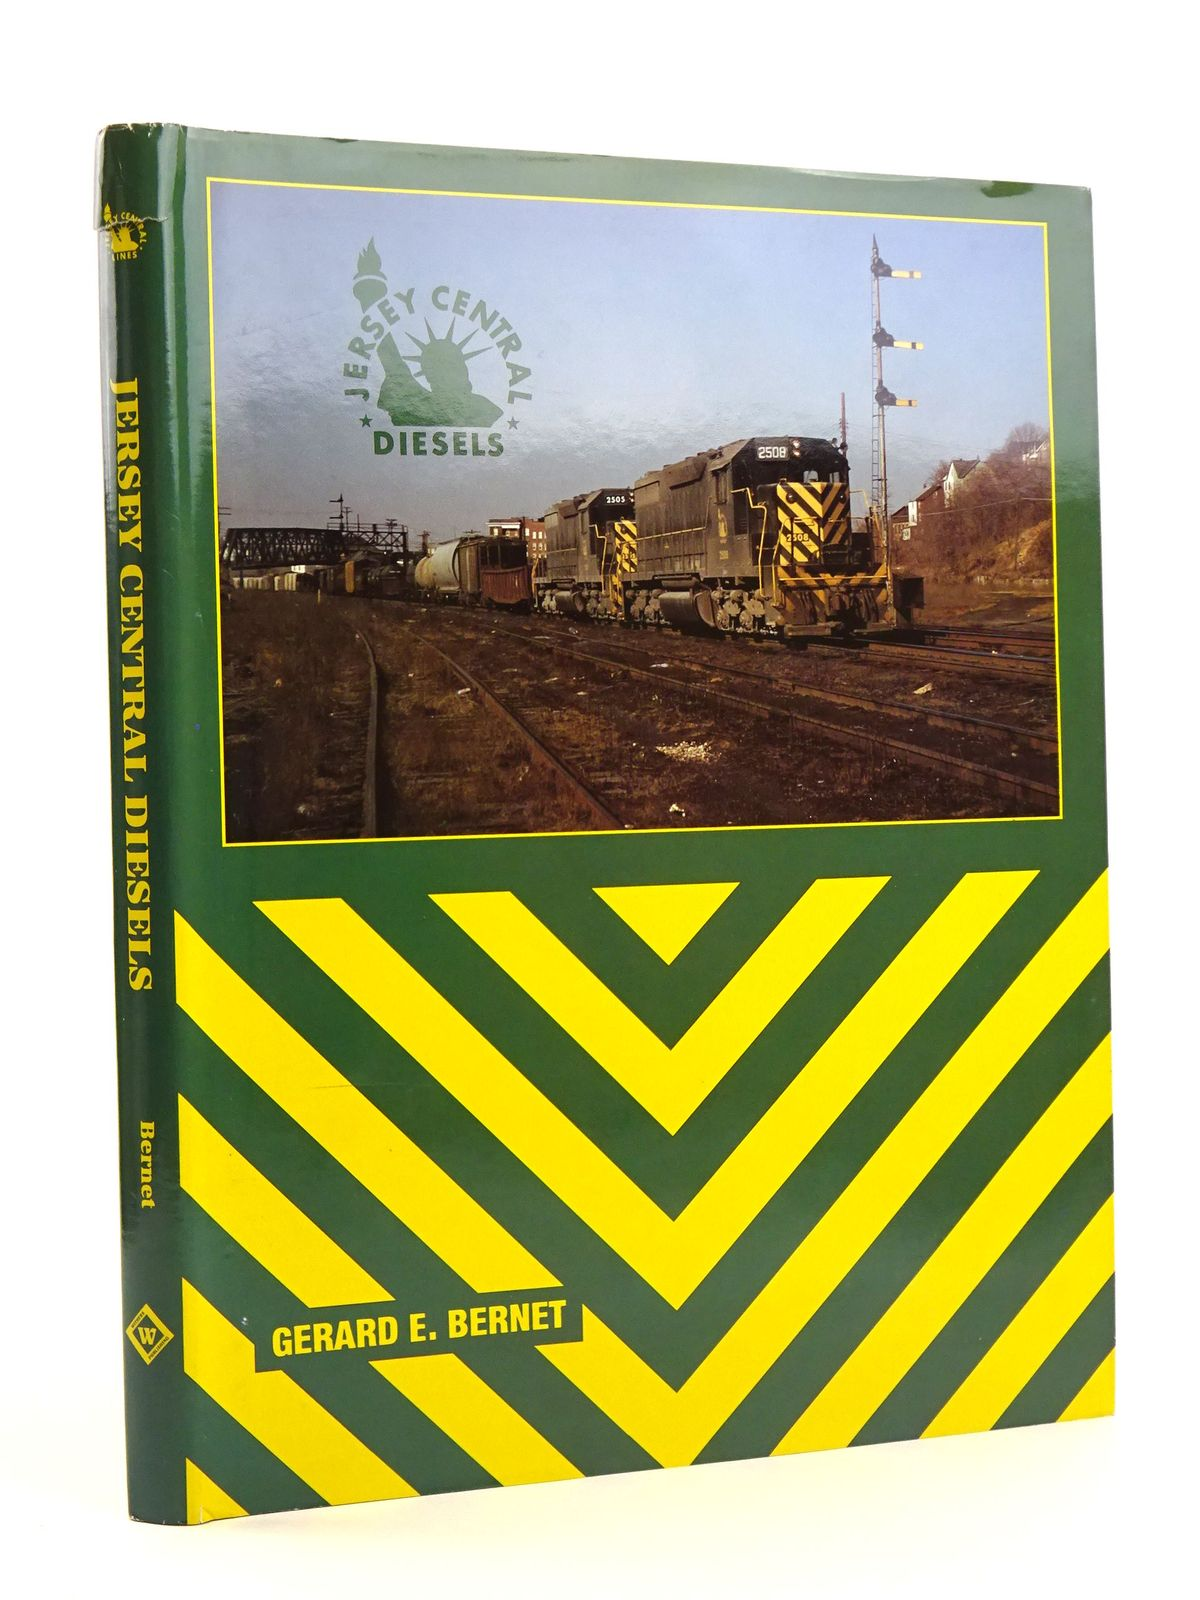 Photo of JERSEY CENTRAL DIESELS written by Bernet, Gerard E. published by Withers Publishing (STOCK CODE: 1818121)  for sale by Stella & Rose's Books